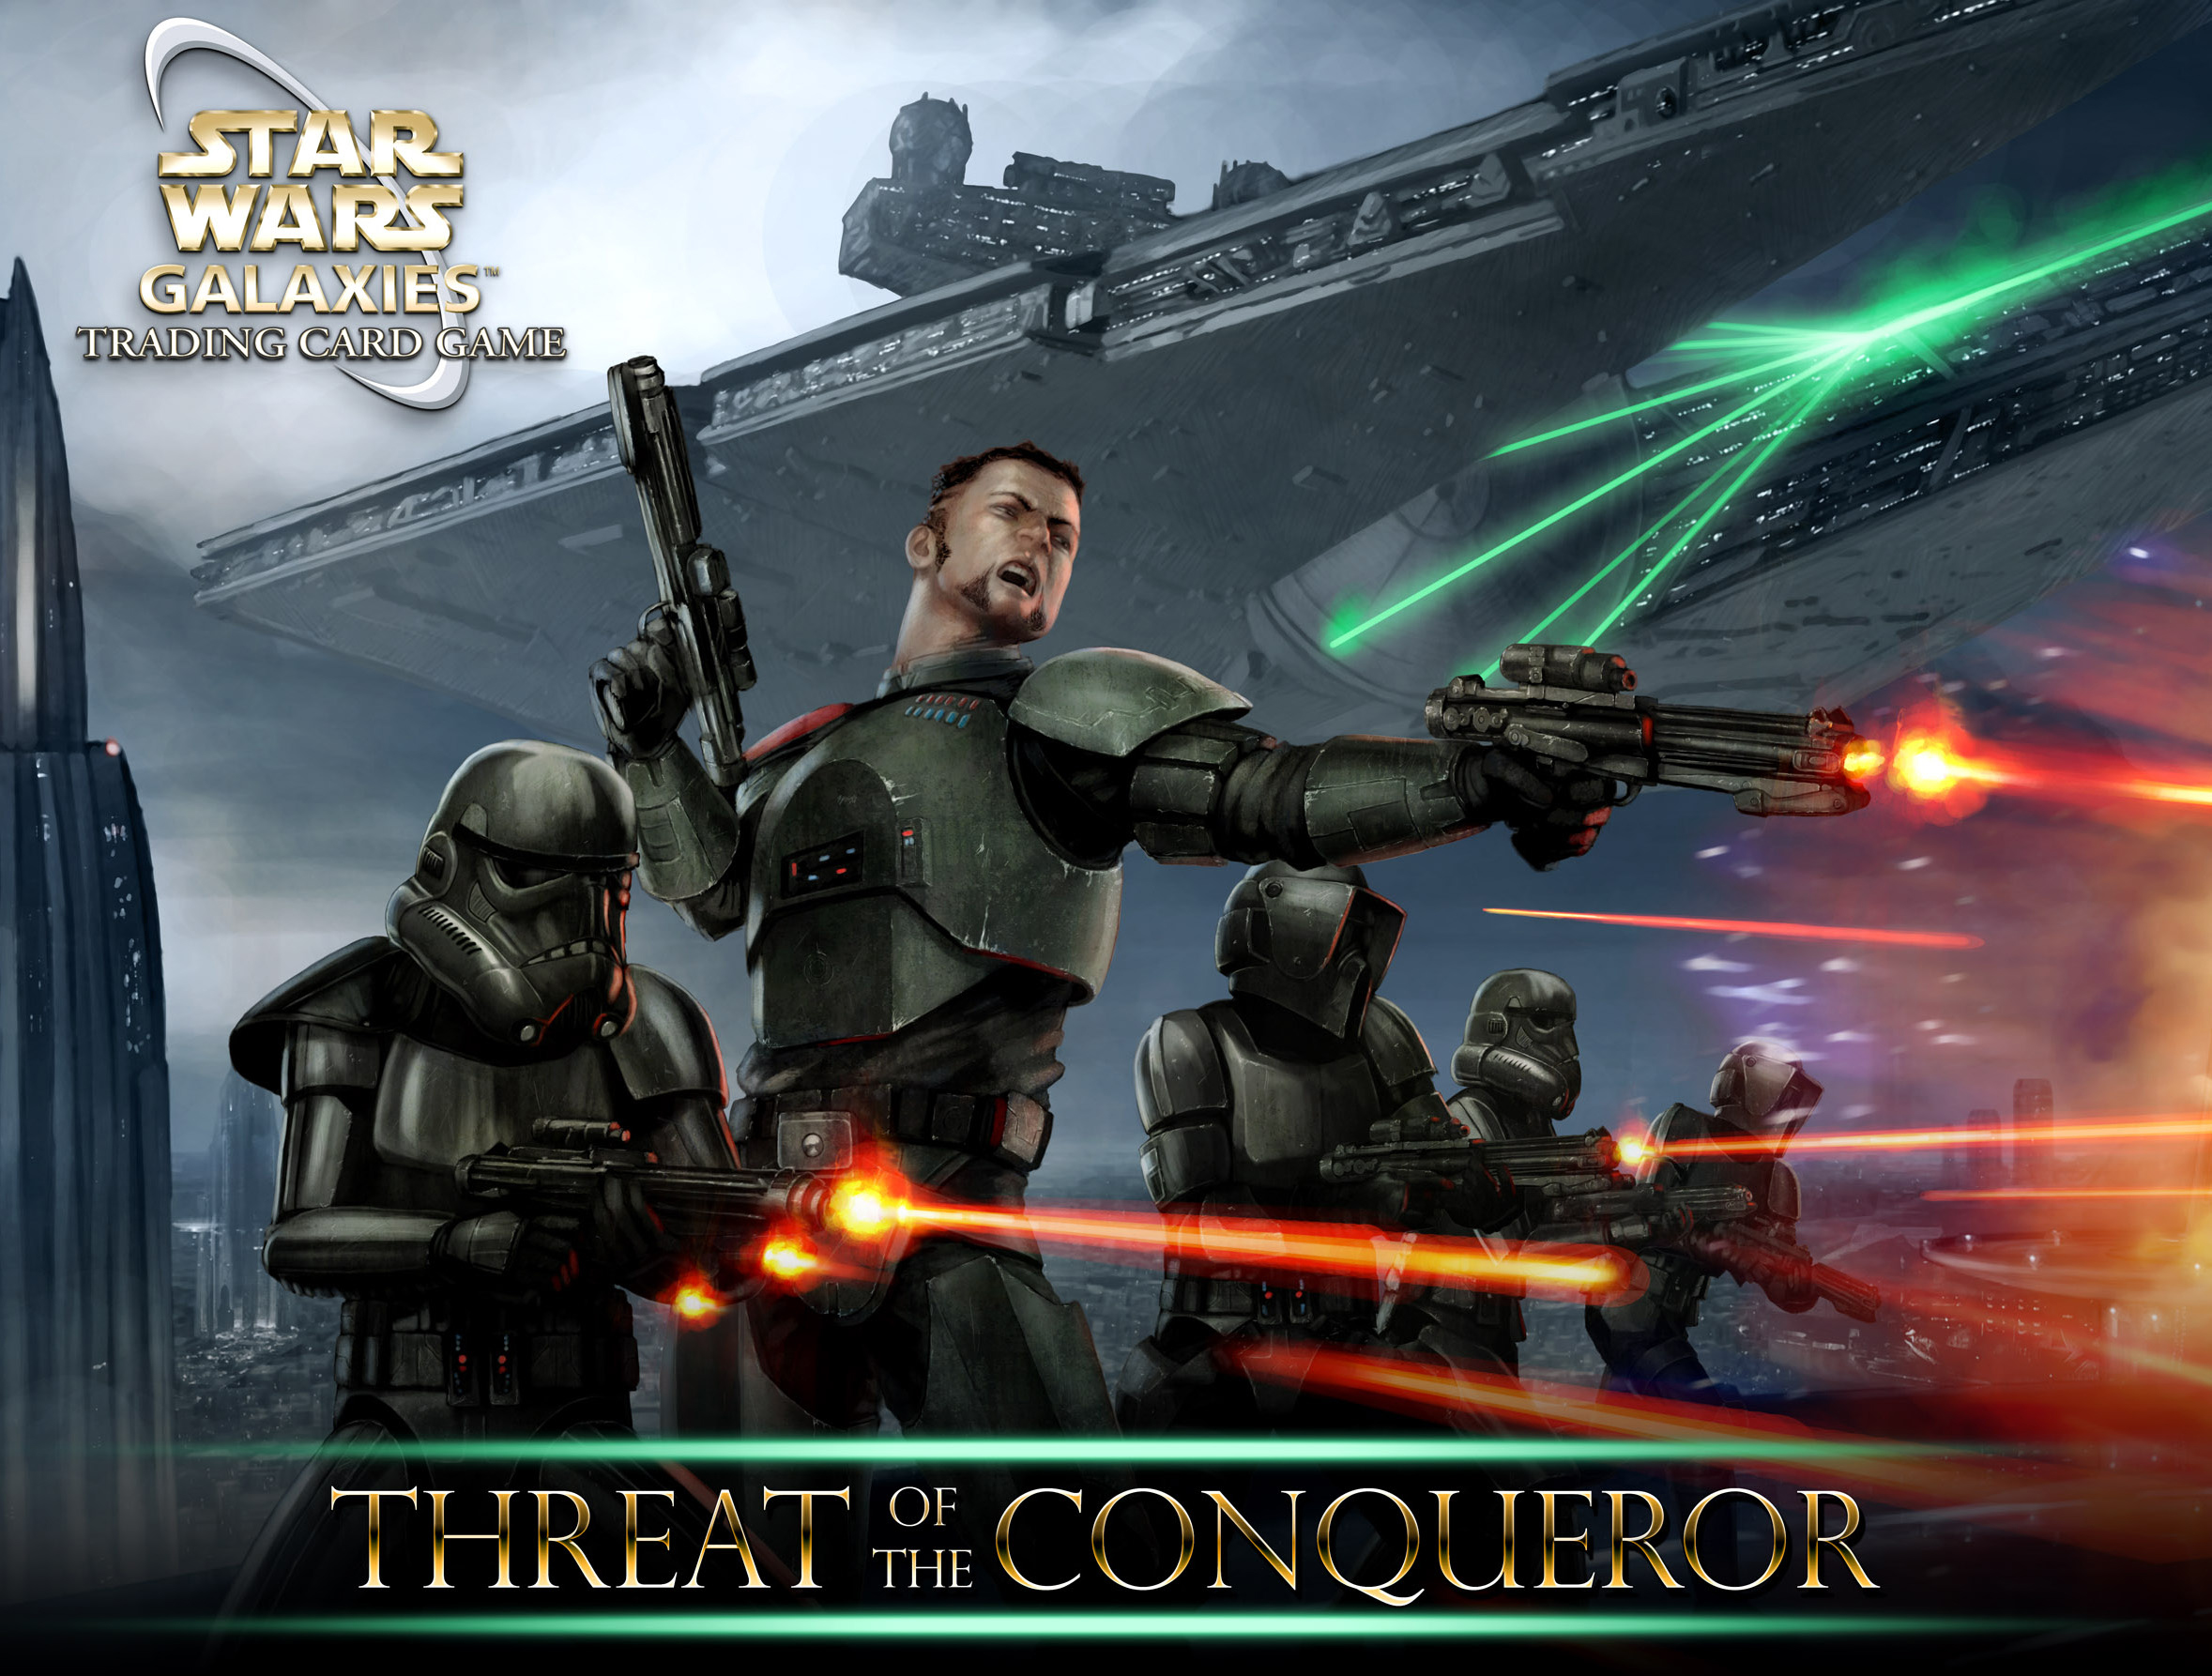 Threat of the Conqueror